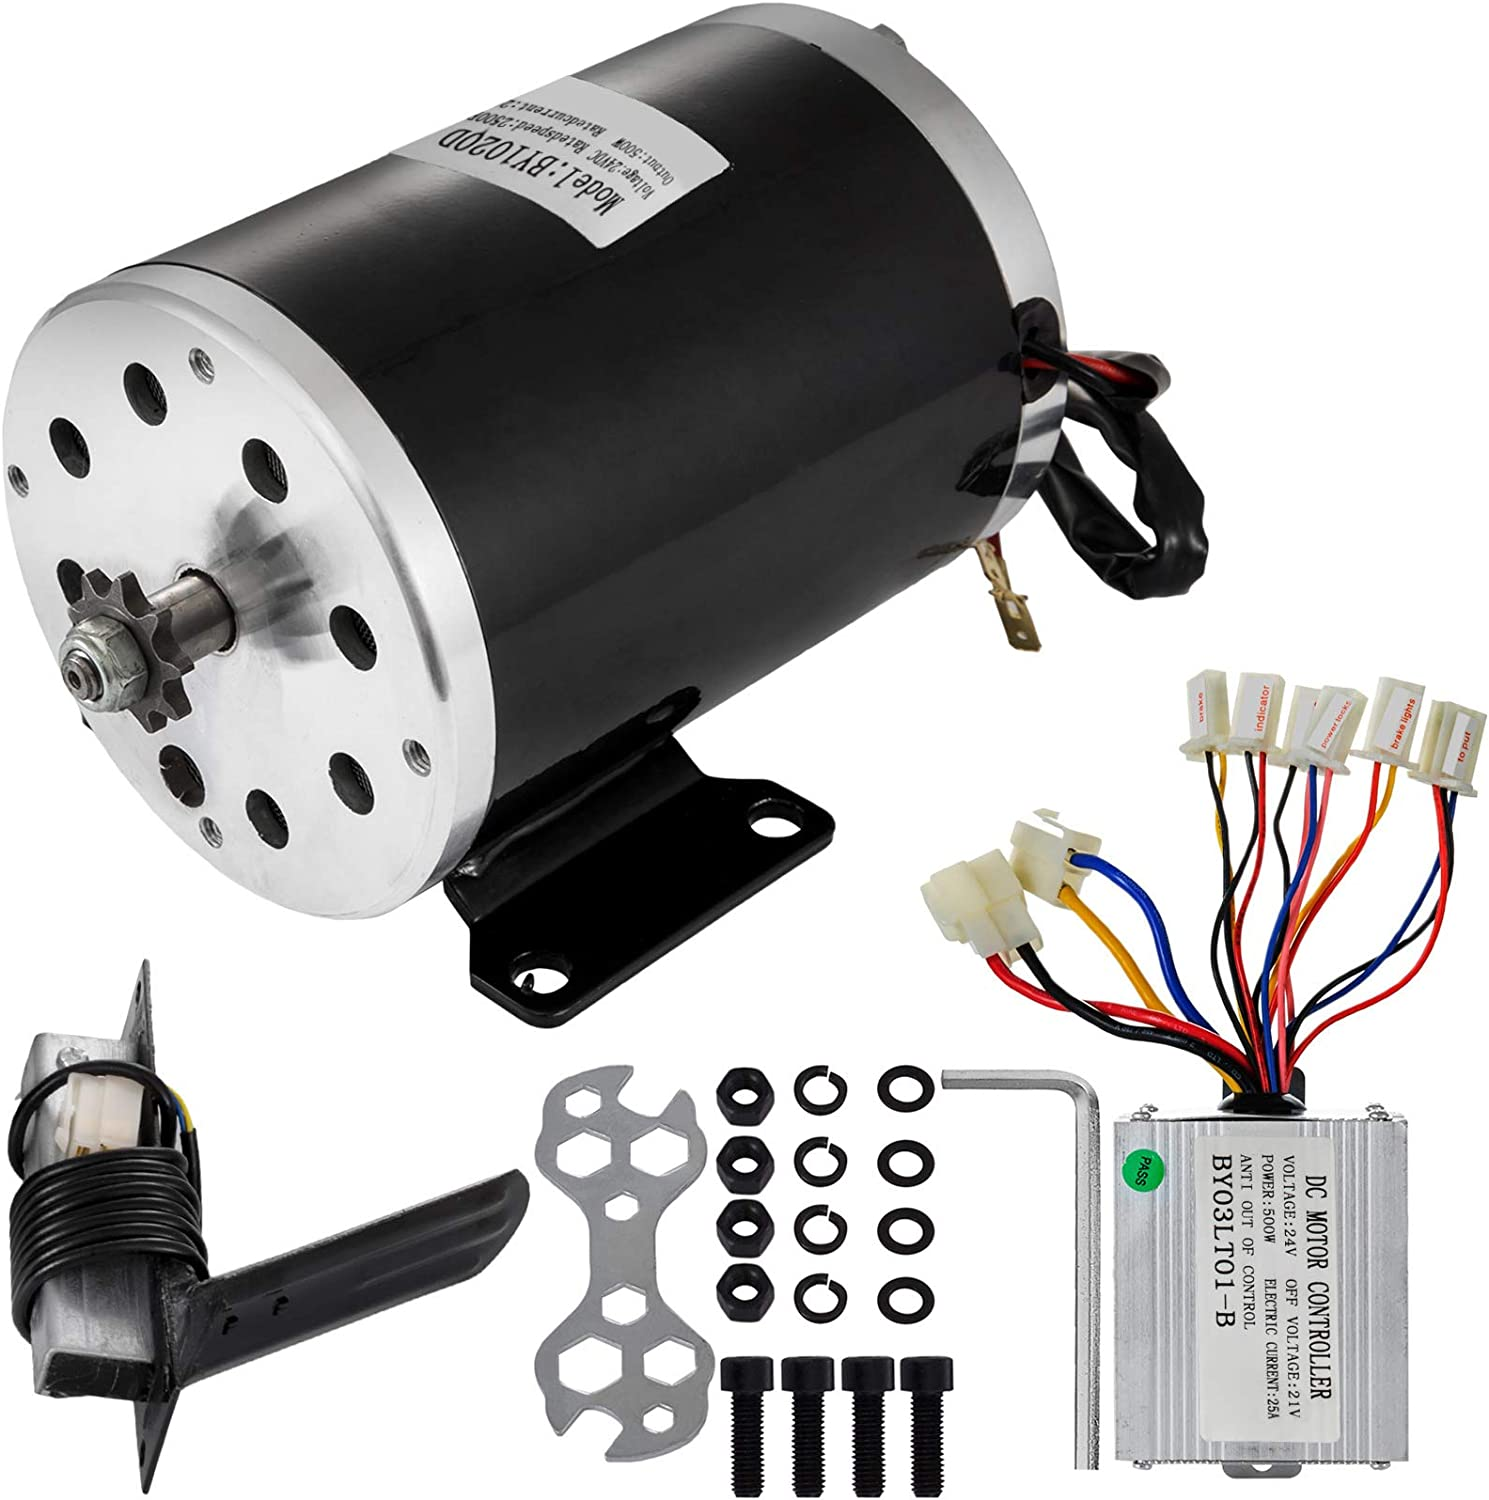 Mophorn Electric Brushed Motor 24V DC 500 Watt with Controller & Pedal 11Tooth 25Chain Sprocket and Mounting Bracket for Go Karts Scooters & E-Bike